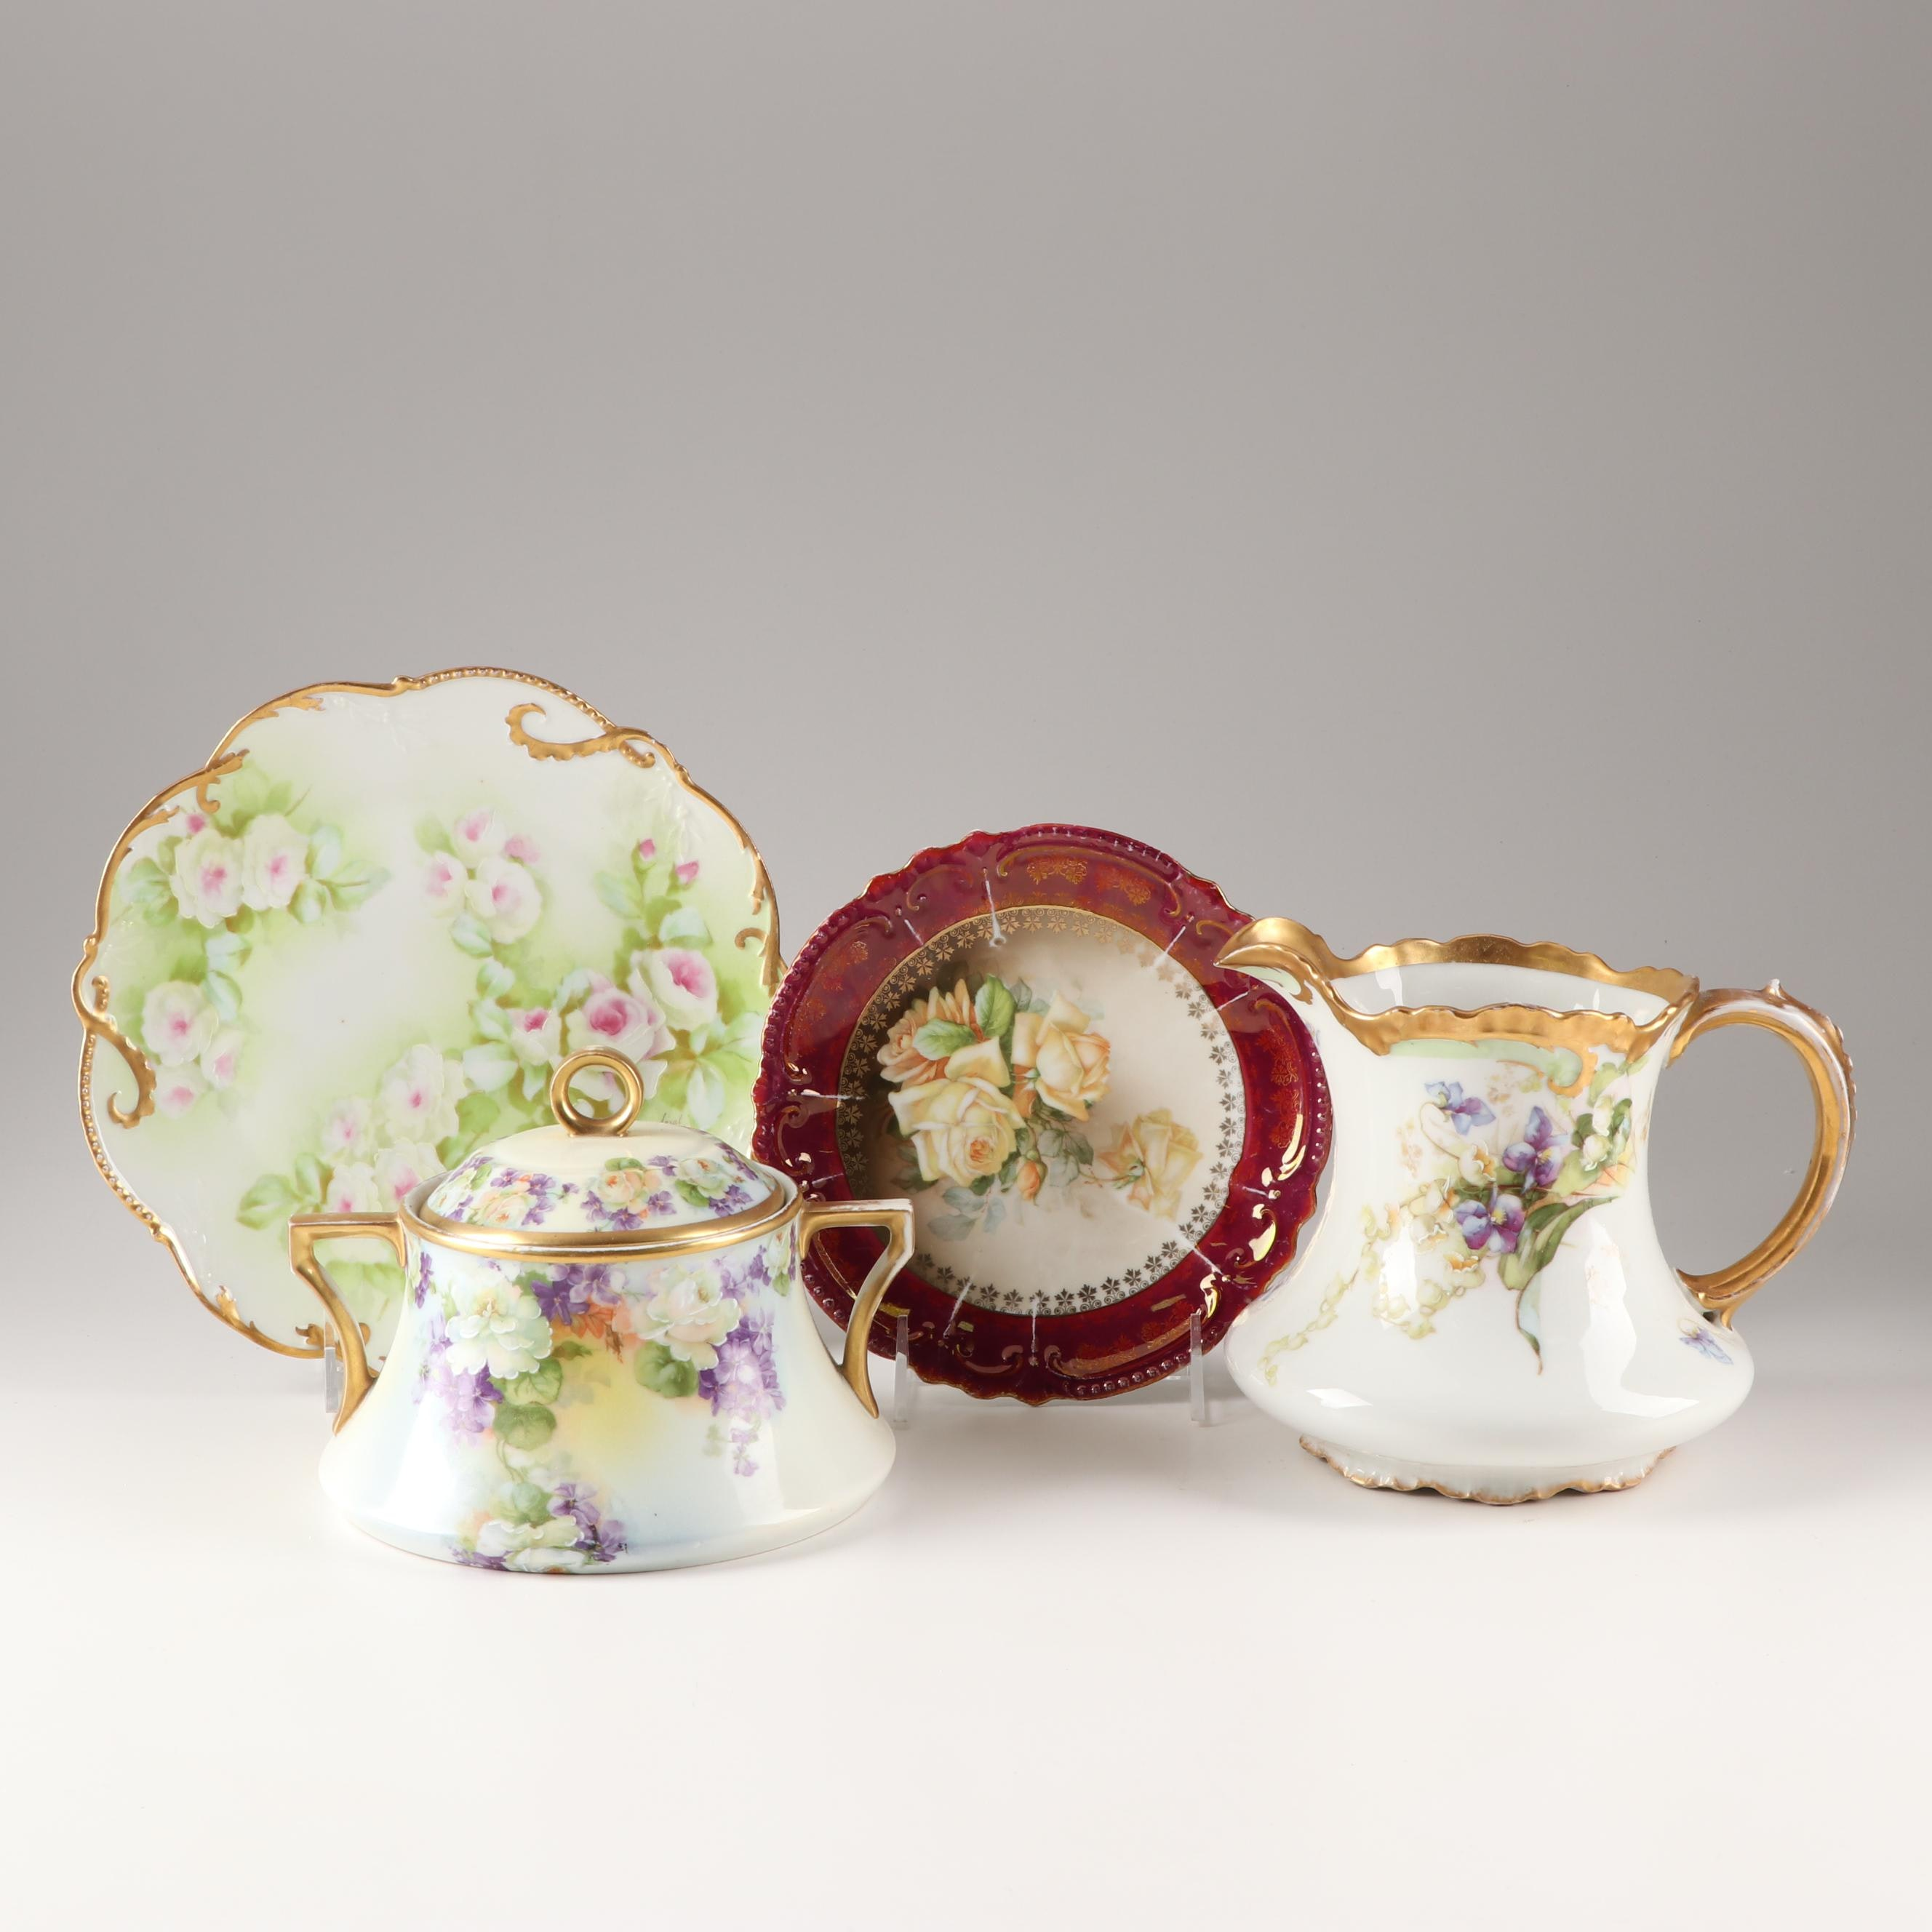 Decorative Victorian Style Tableware Featuring Limoges